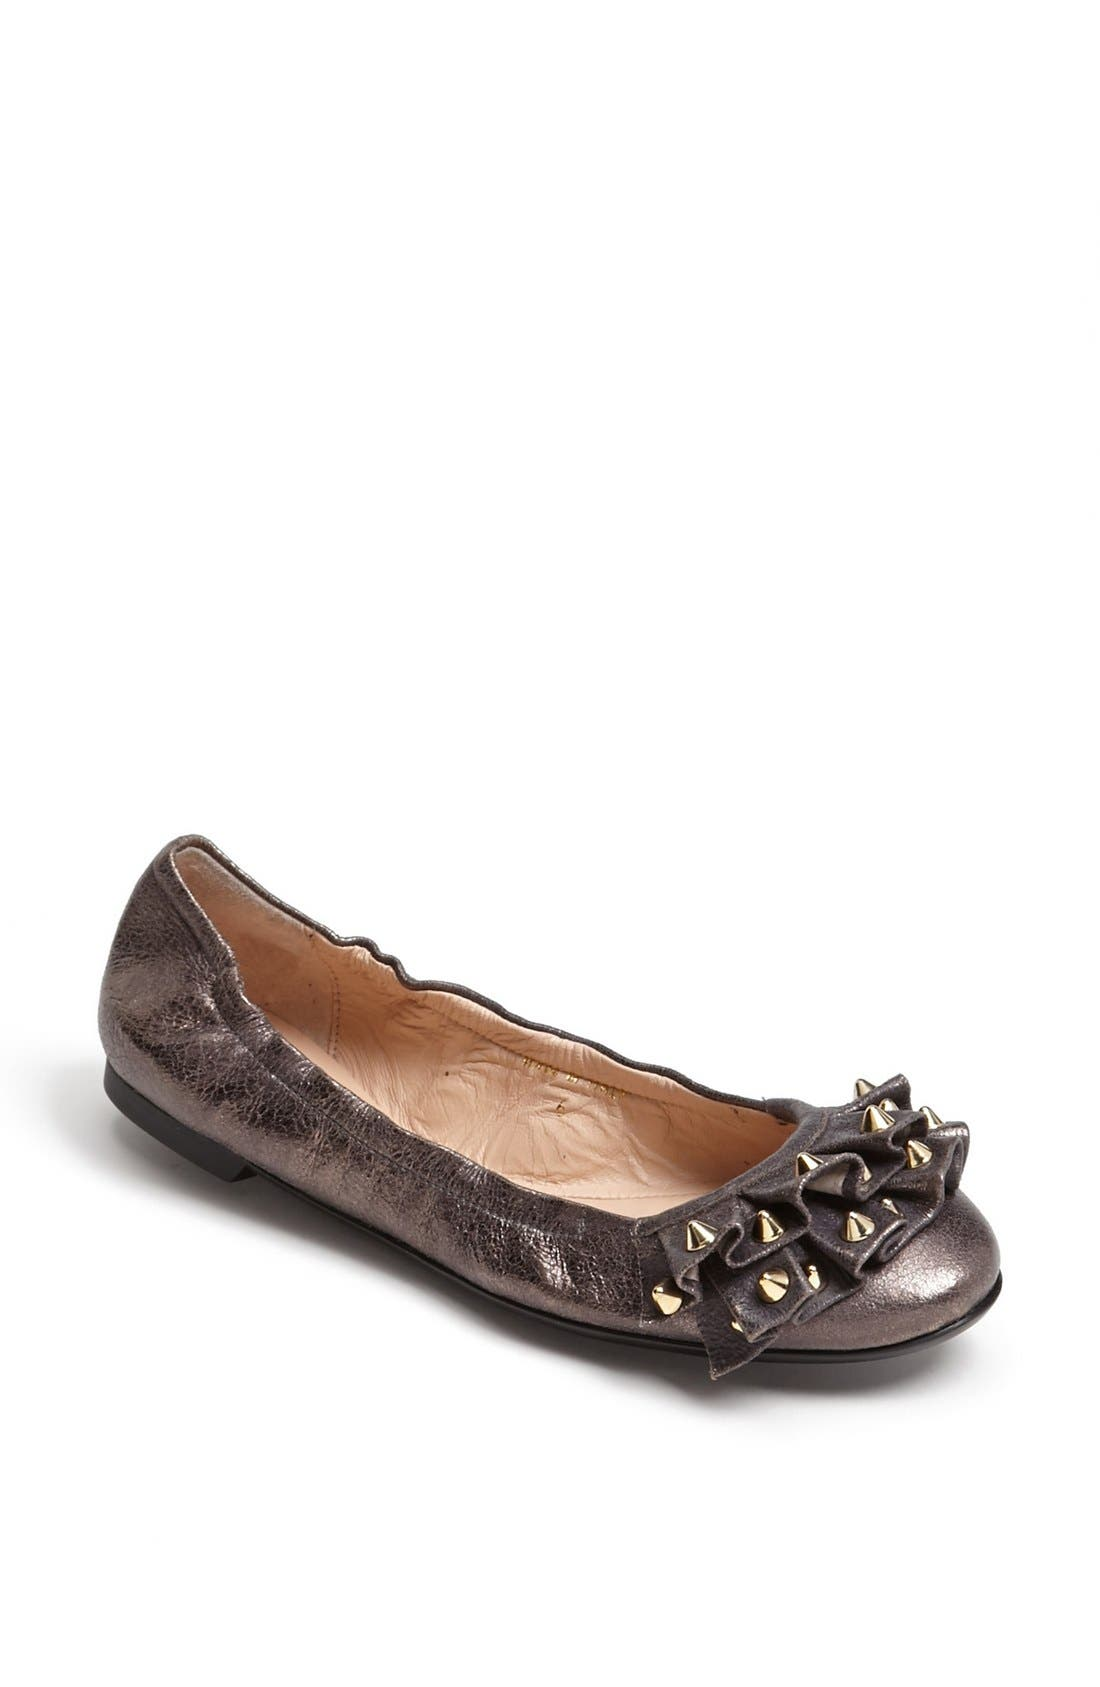 Alternate Image 1 Selected - Sweet Ballerina Metallic Ballet Flat